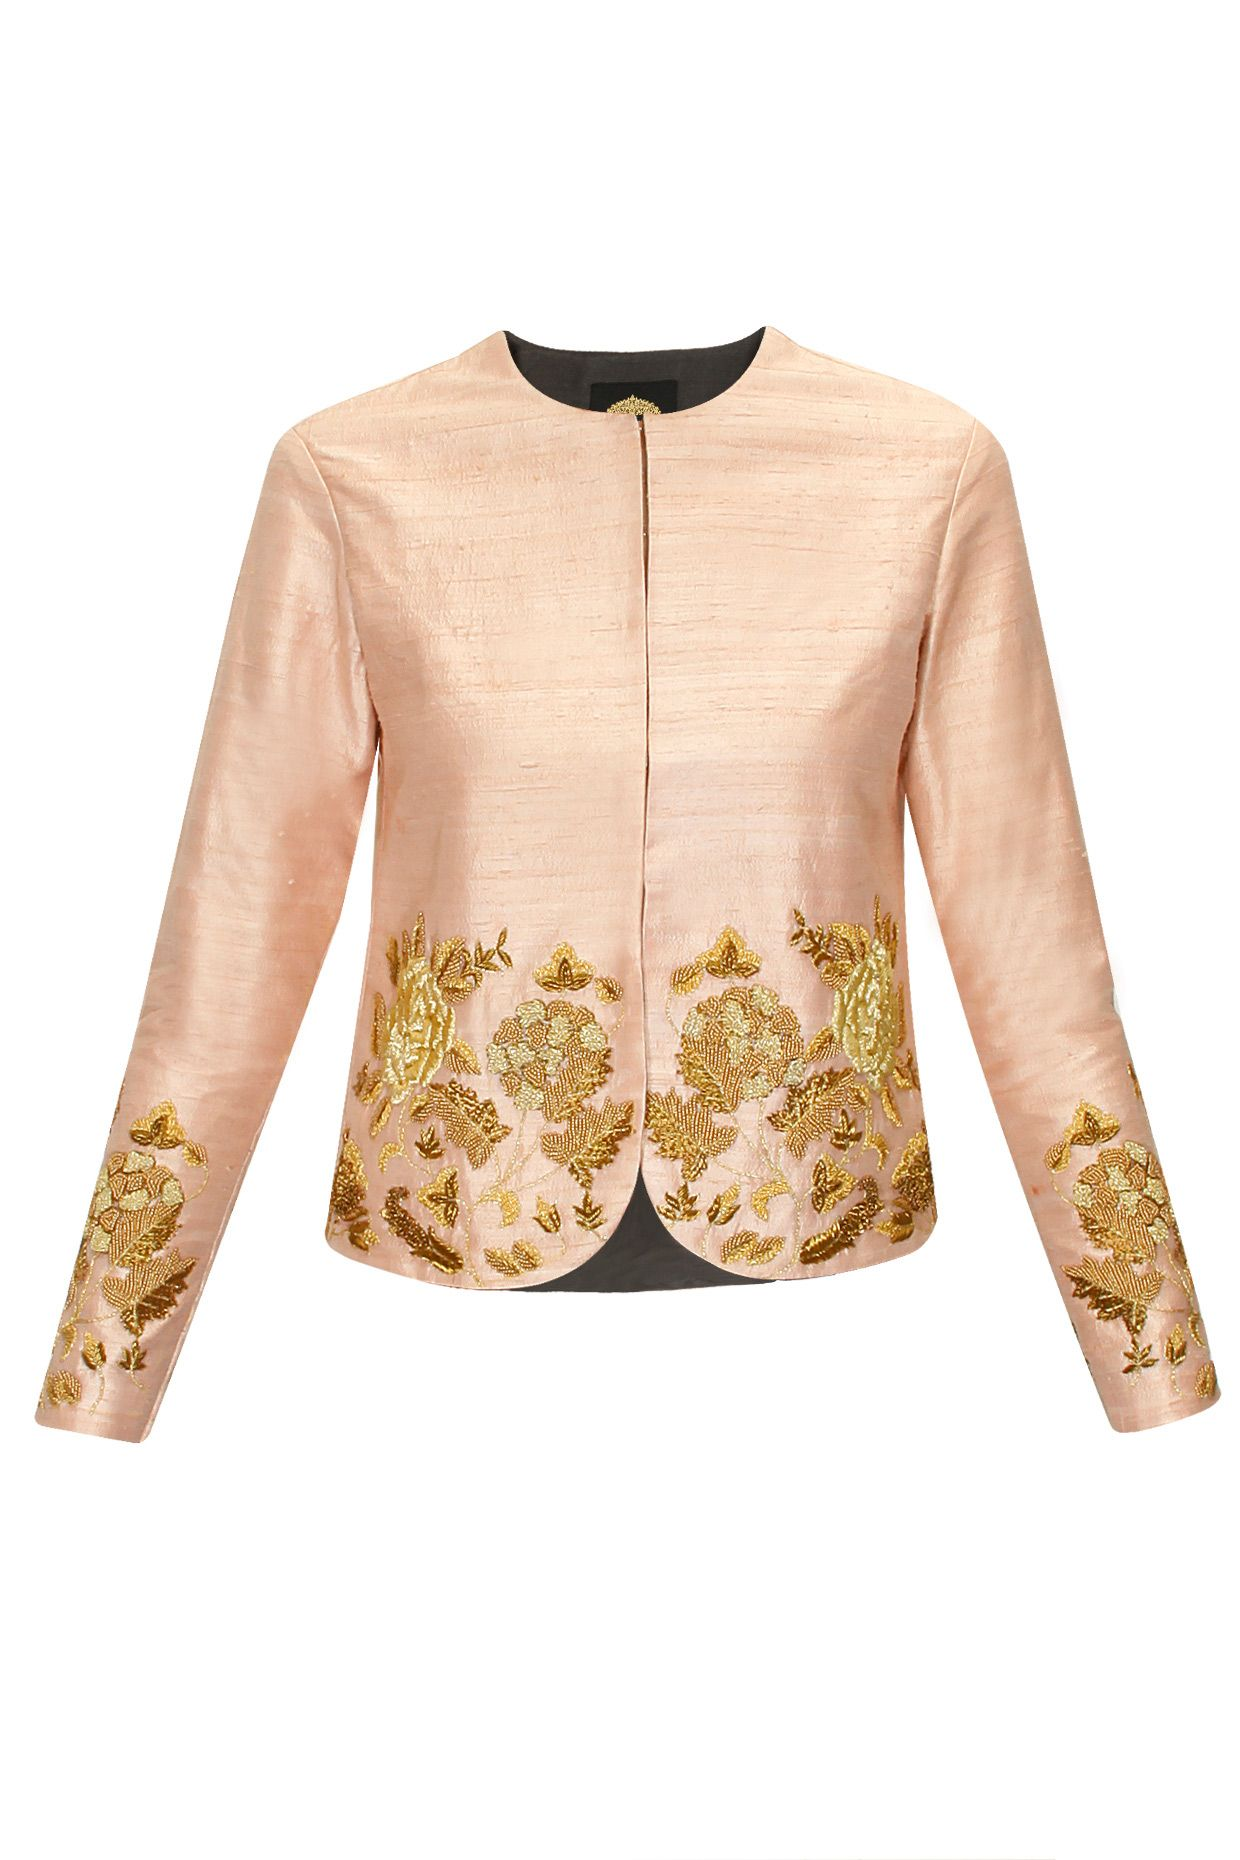 Peach floral jaal jacket available only at pernia s pop up